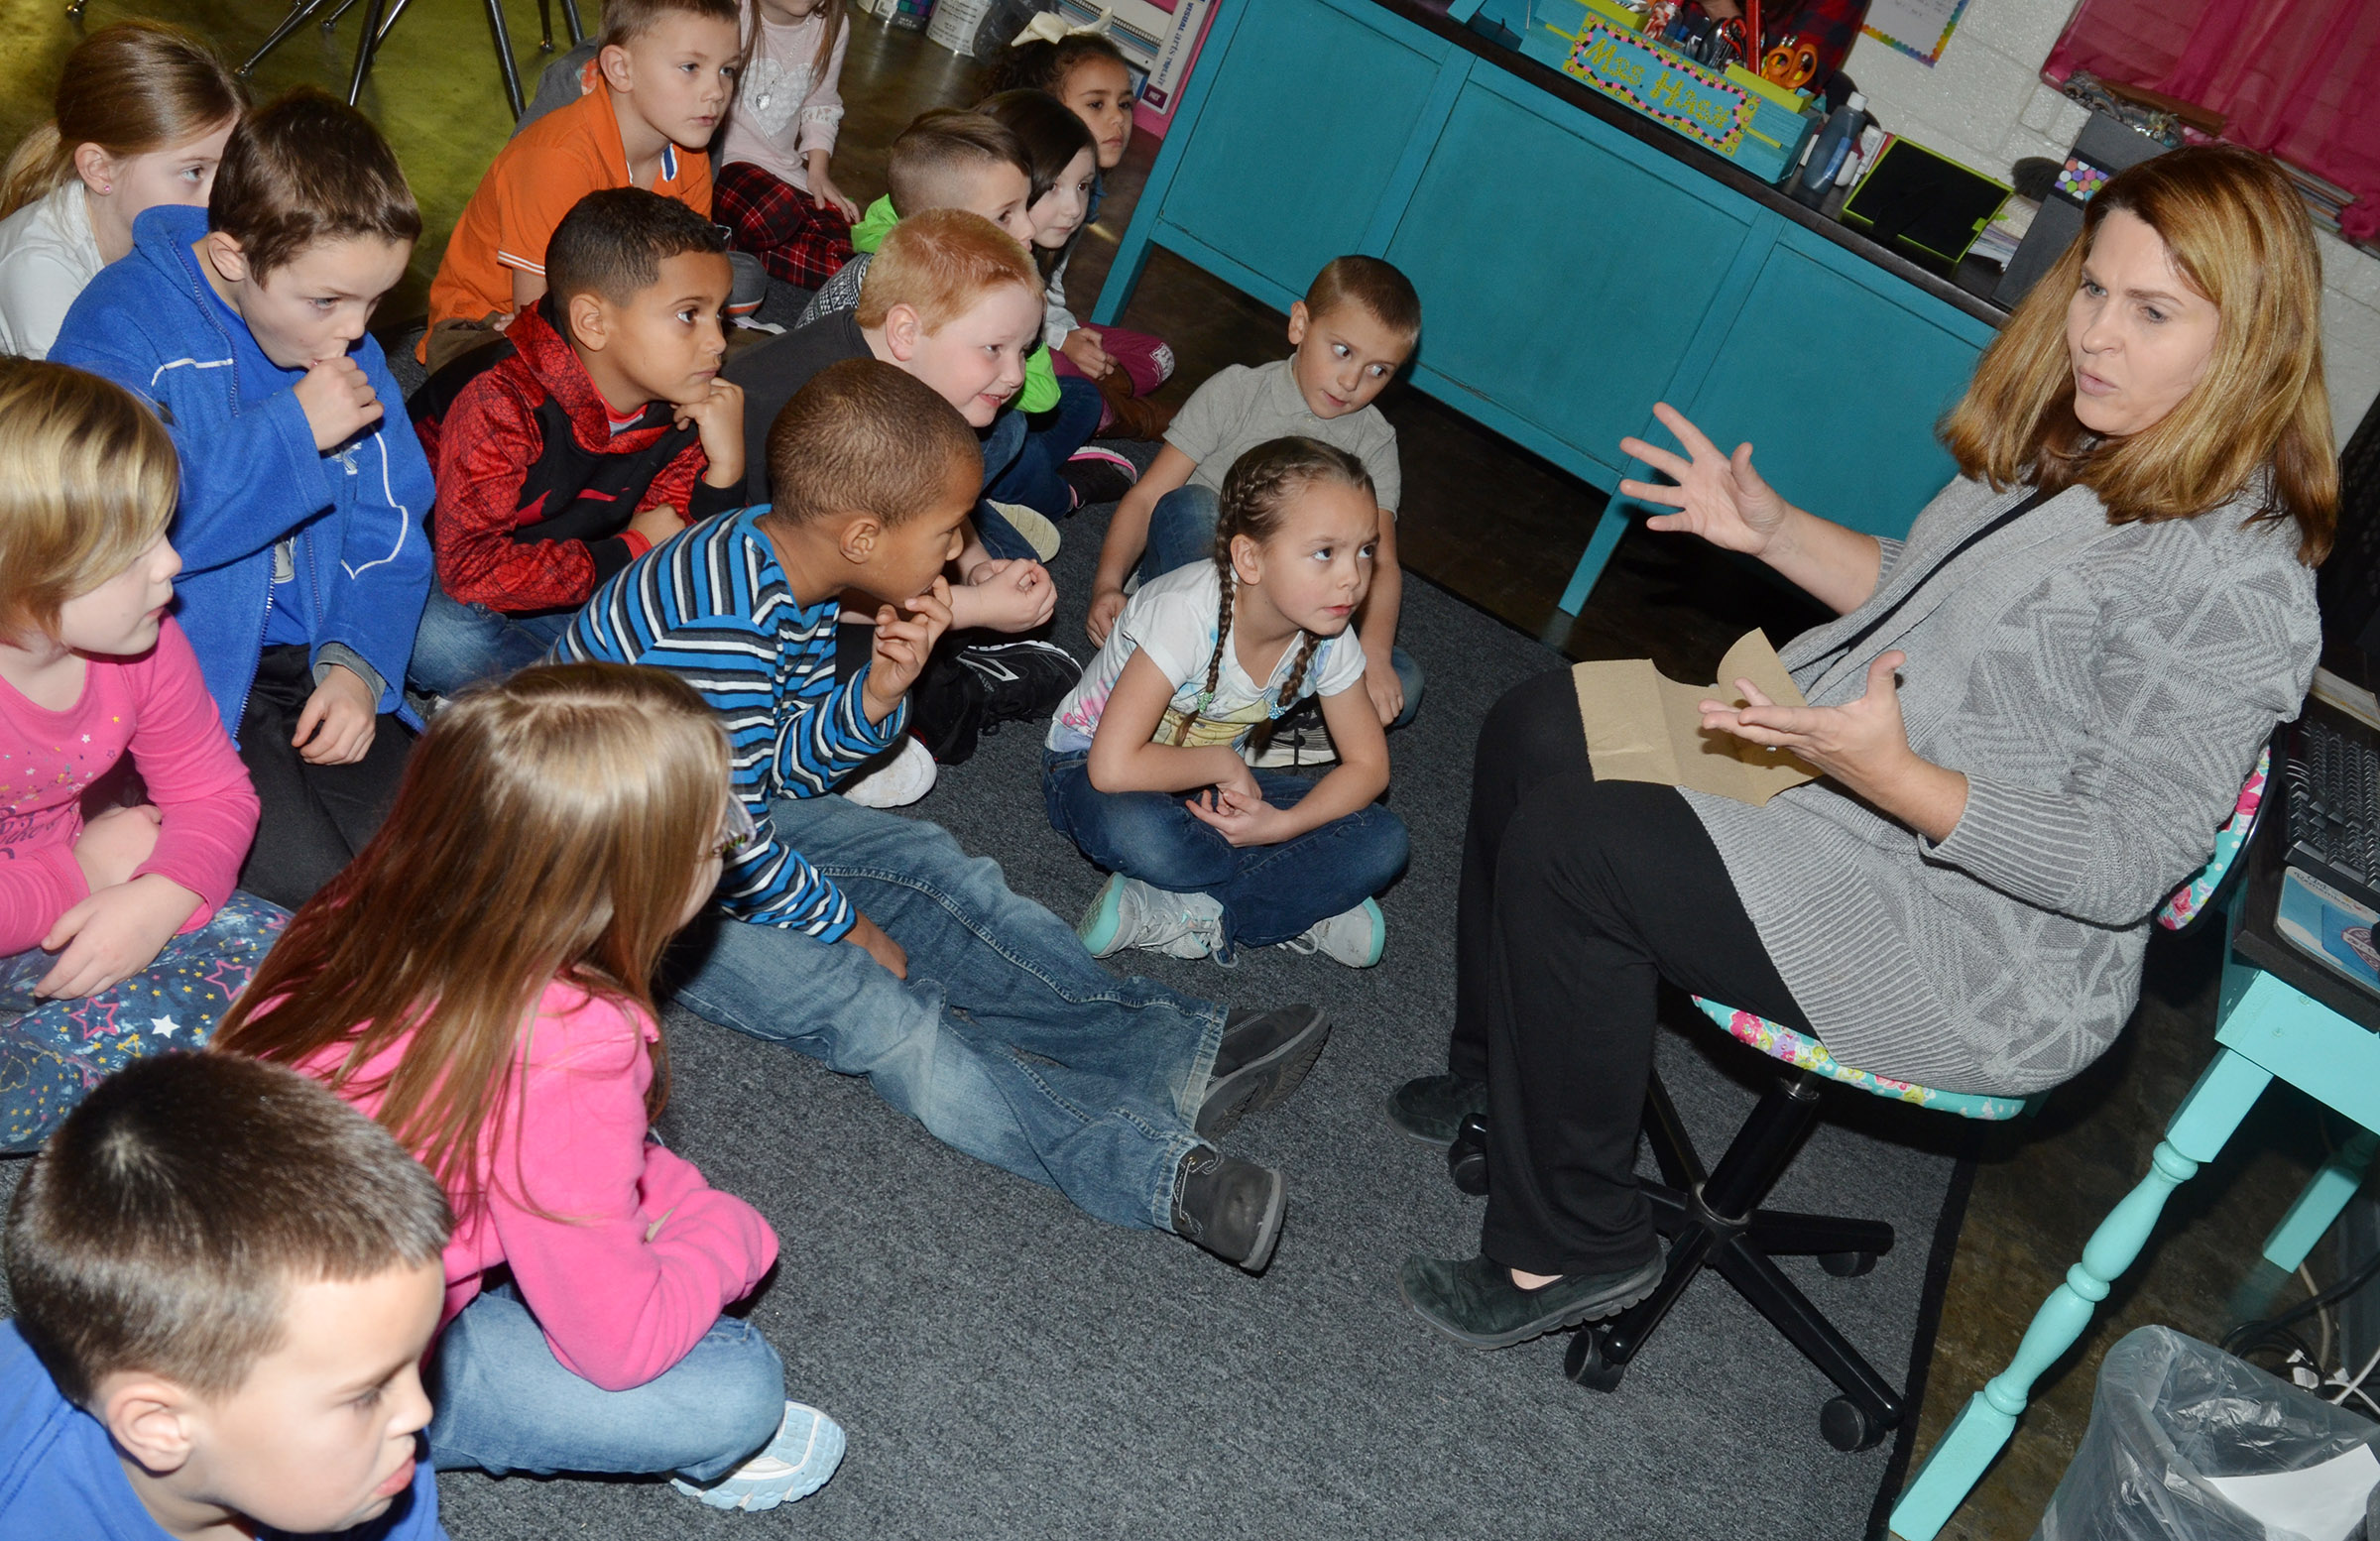 CES Guidance Counselor Sonya Orberson talks to kindergarten students about why it's important to have good table manners.